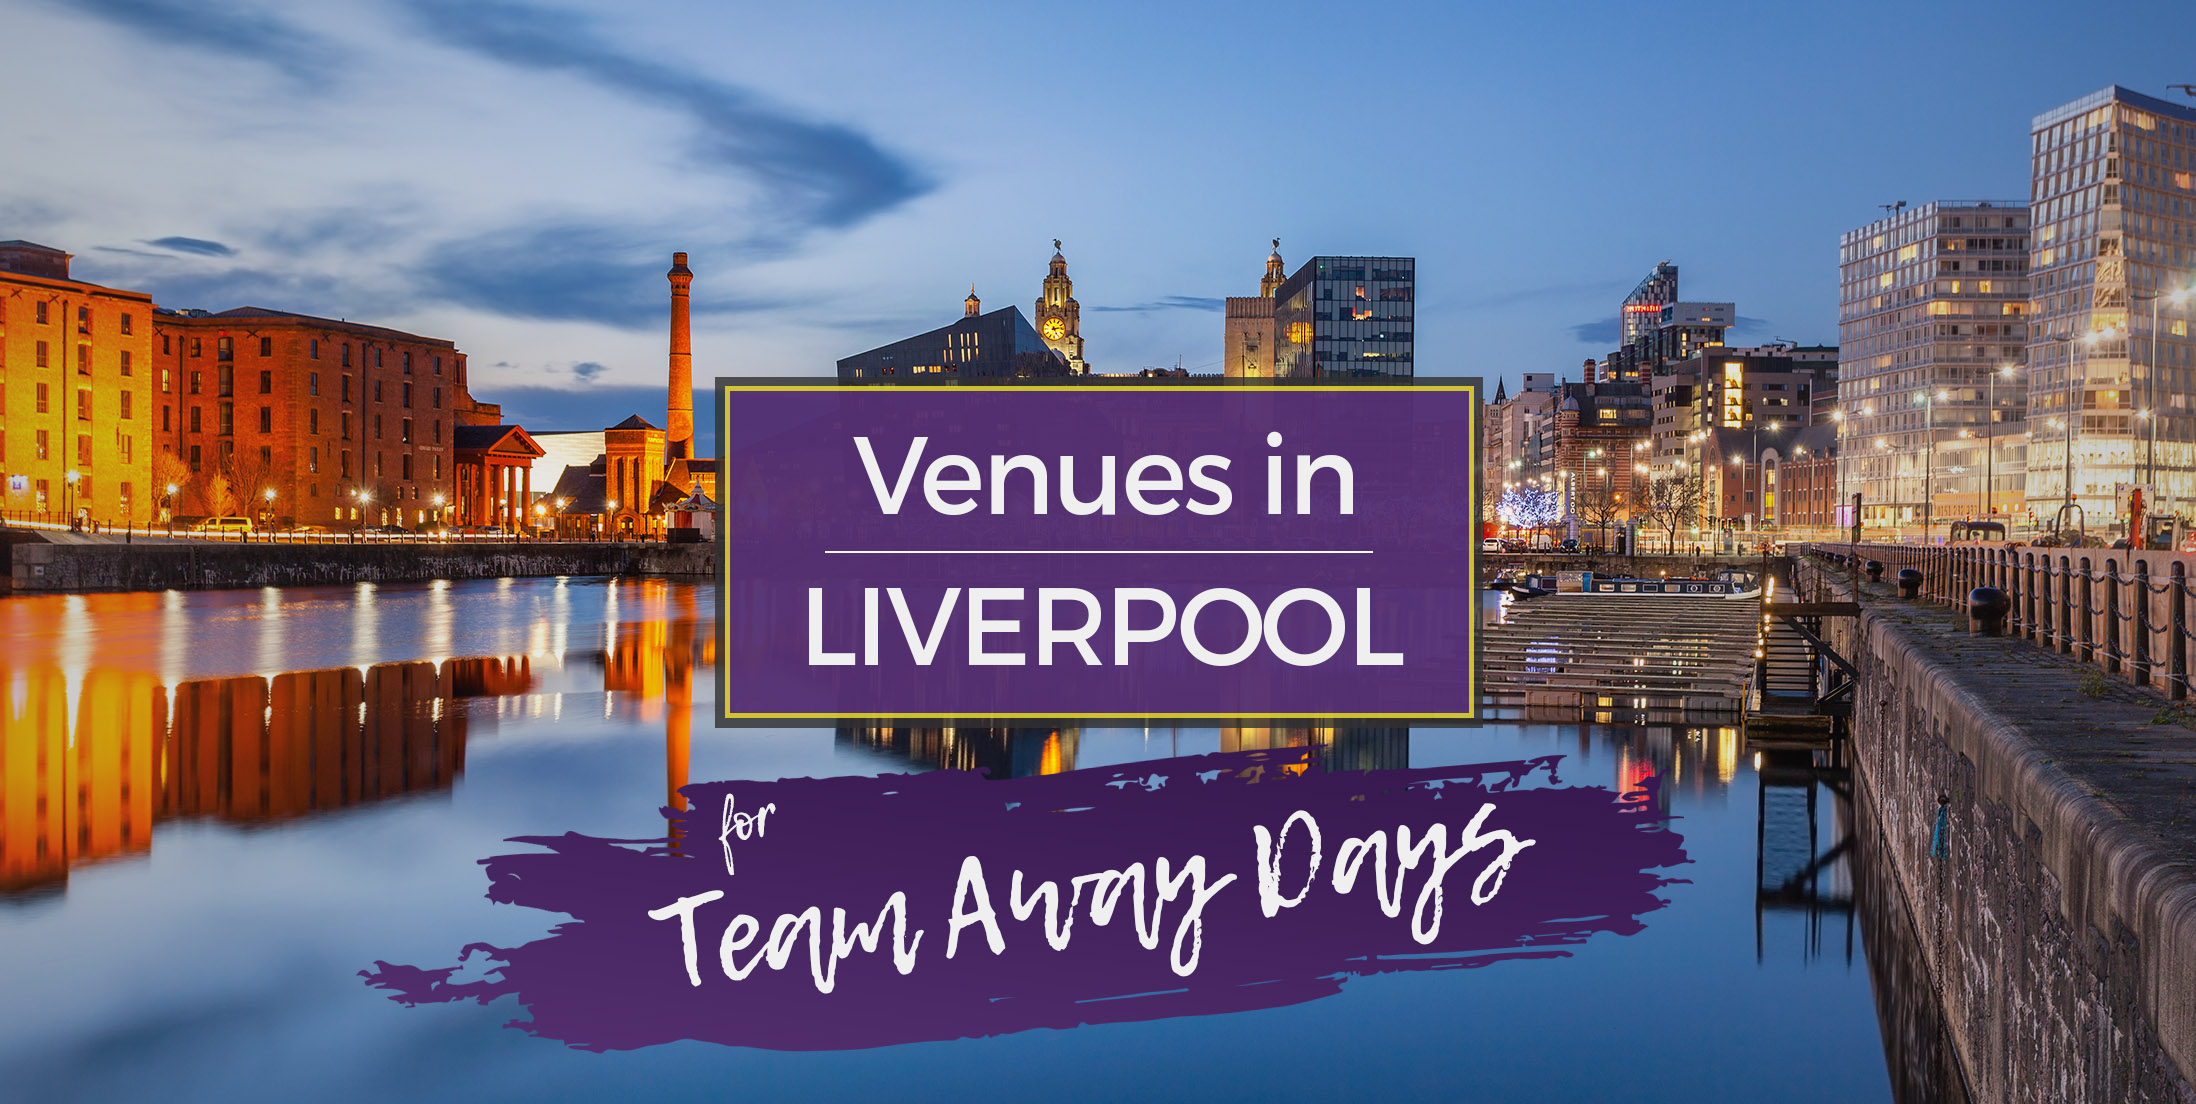 Venues in Liverpool for Team Away Days